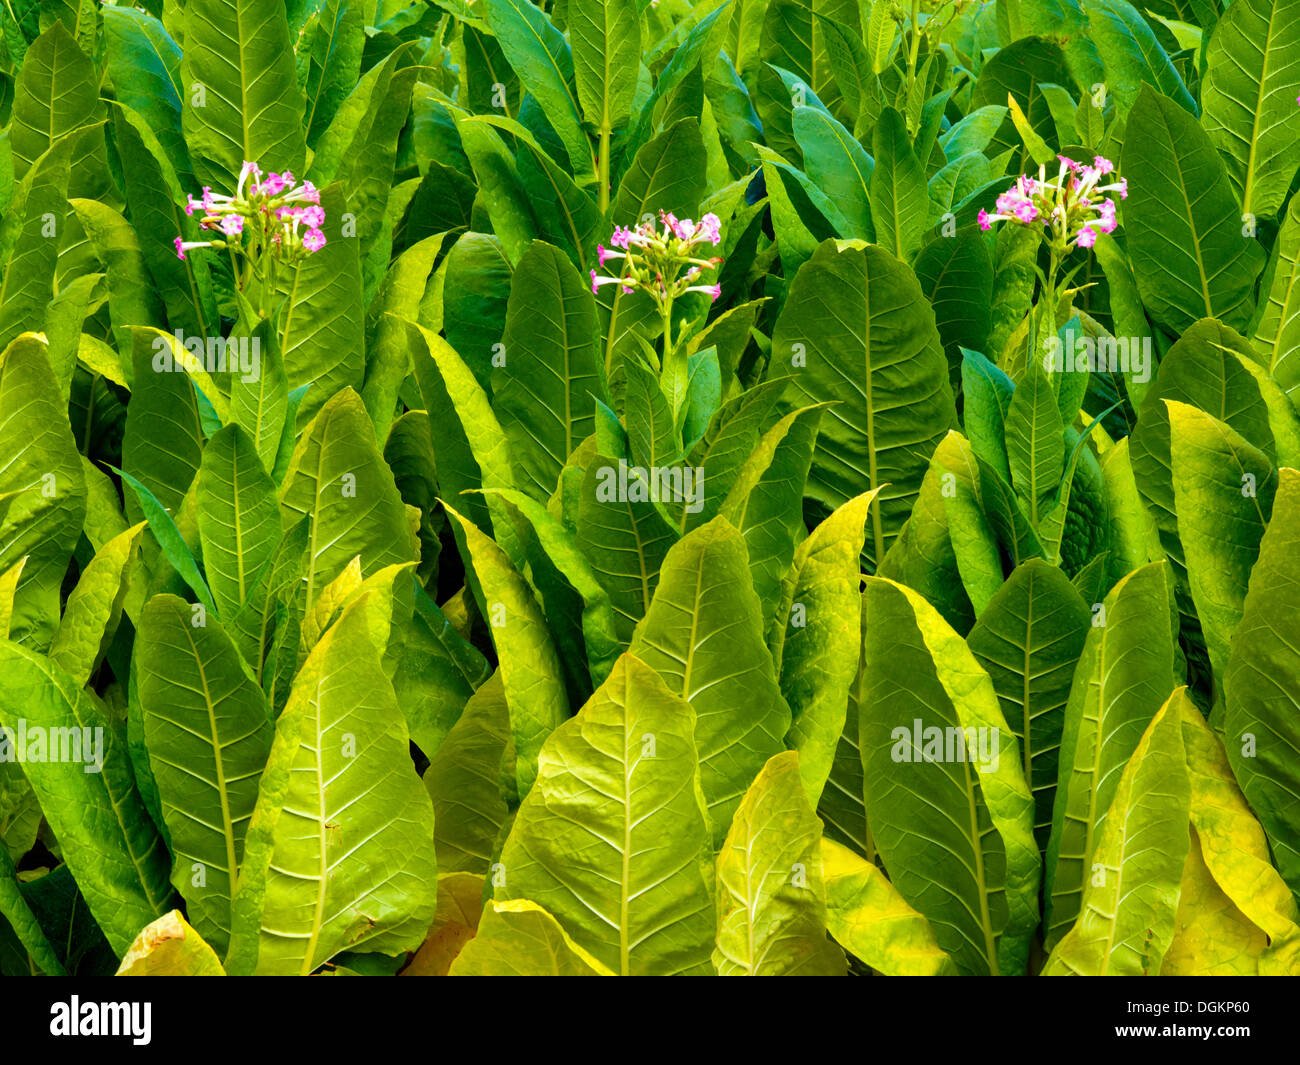 Tobacco leaves beginning to flower. - Stock Image